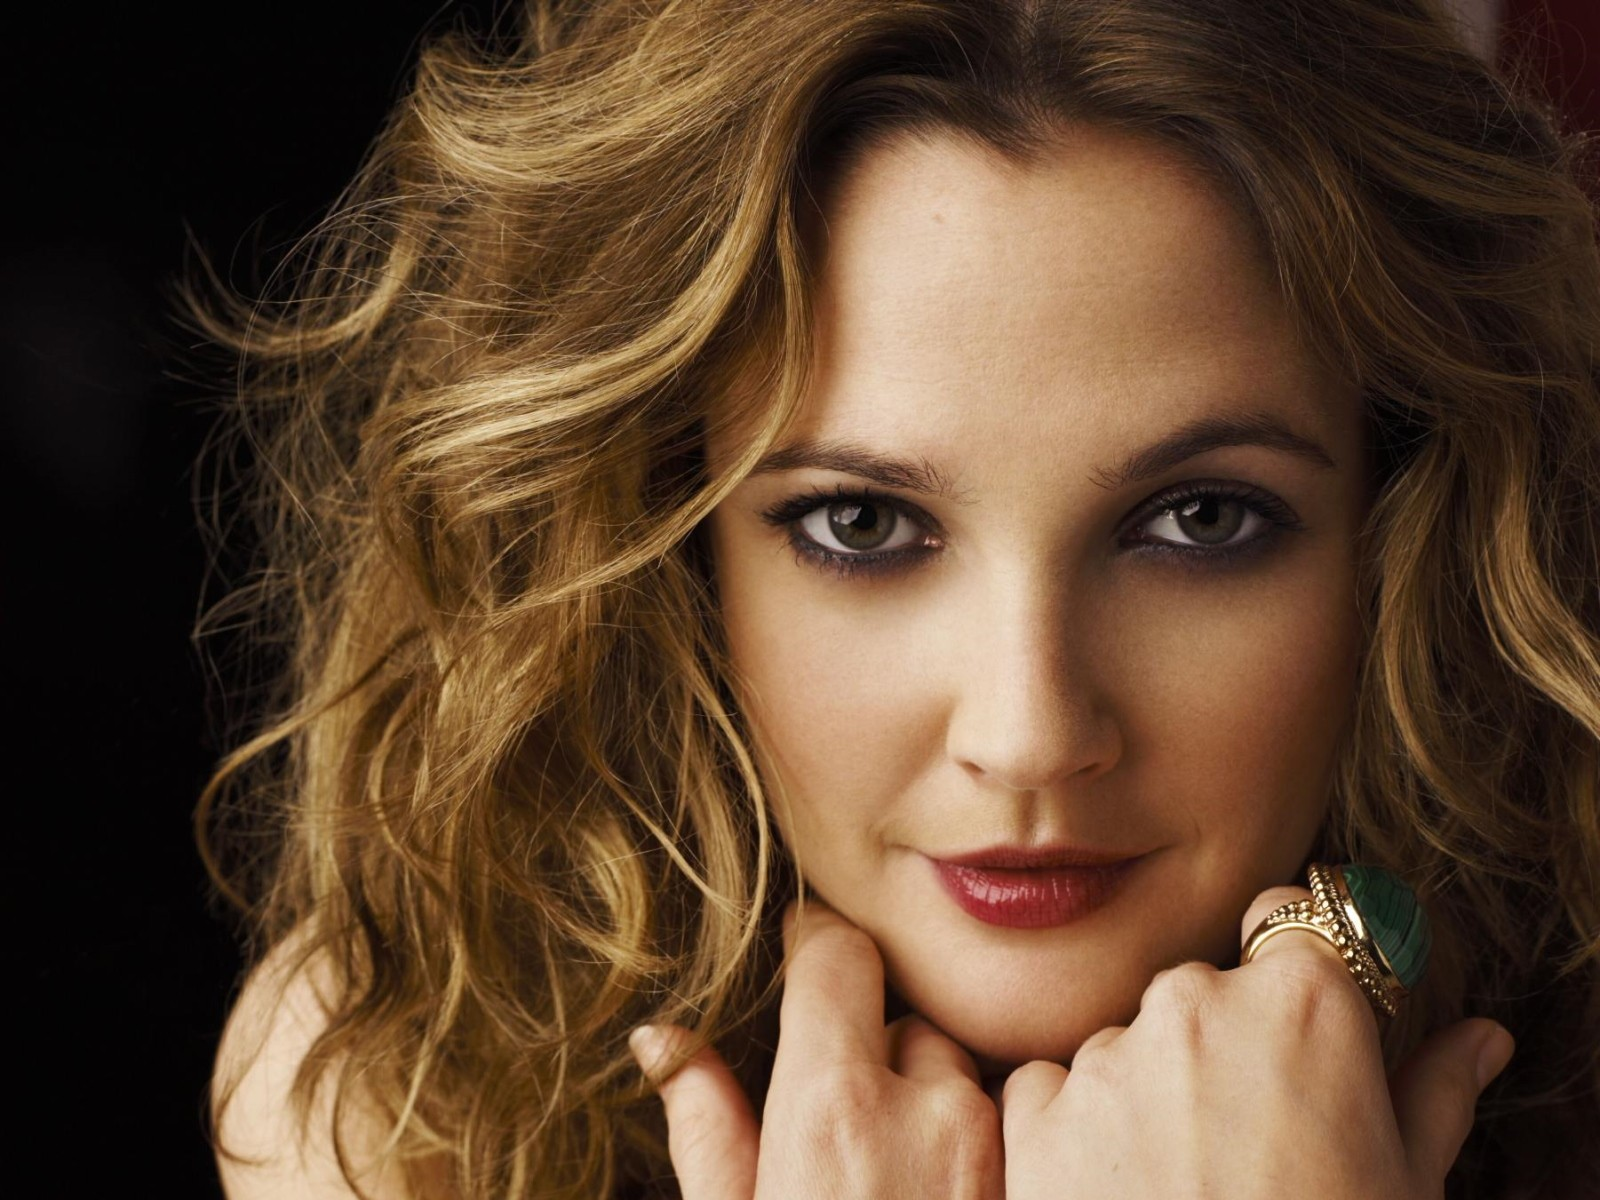 Drew Barrymore Wallpap... Drew Barrymore